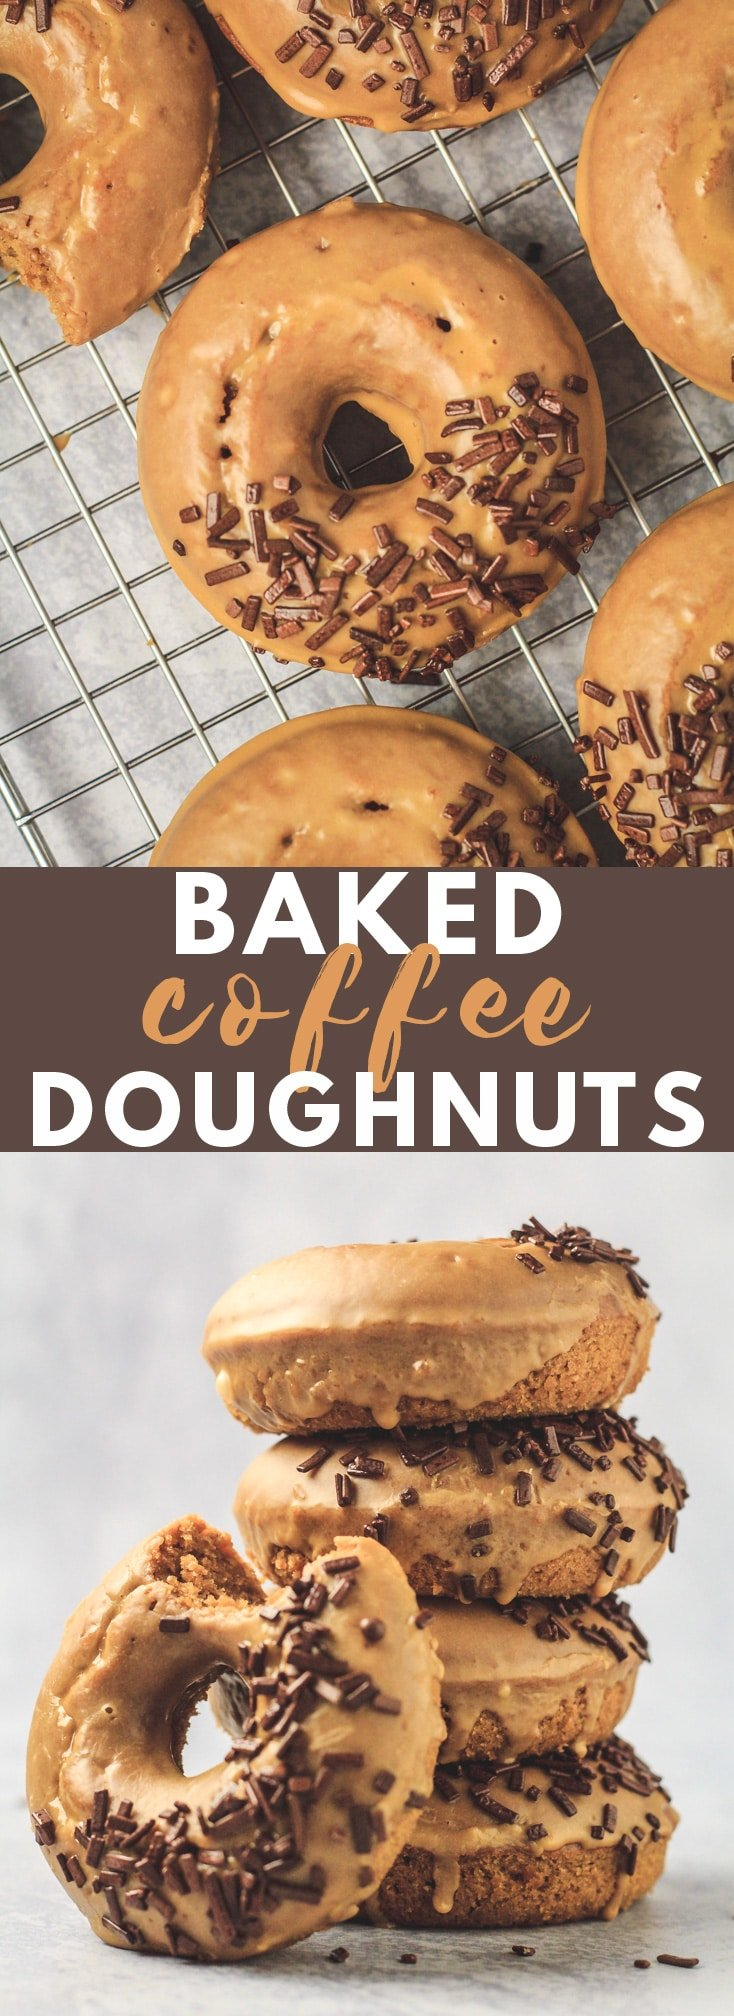 Baked Coffee Doughnuts - Deliciously moist and fluffy baked doughnuts that are infused with coffee, and topped with a sweet coffee glaze. The BEST doughnuts for coffee lovers! #coffee #doughnuts #donuts #recipe